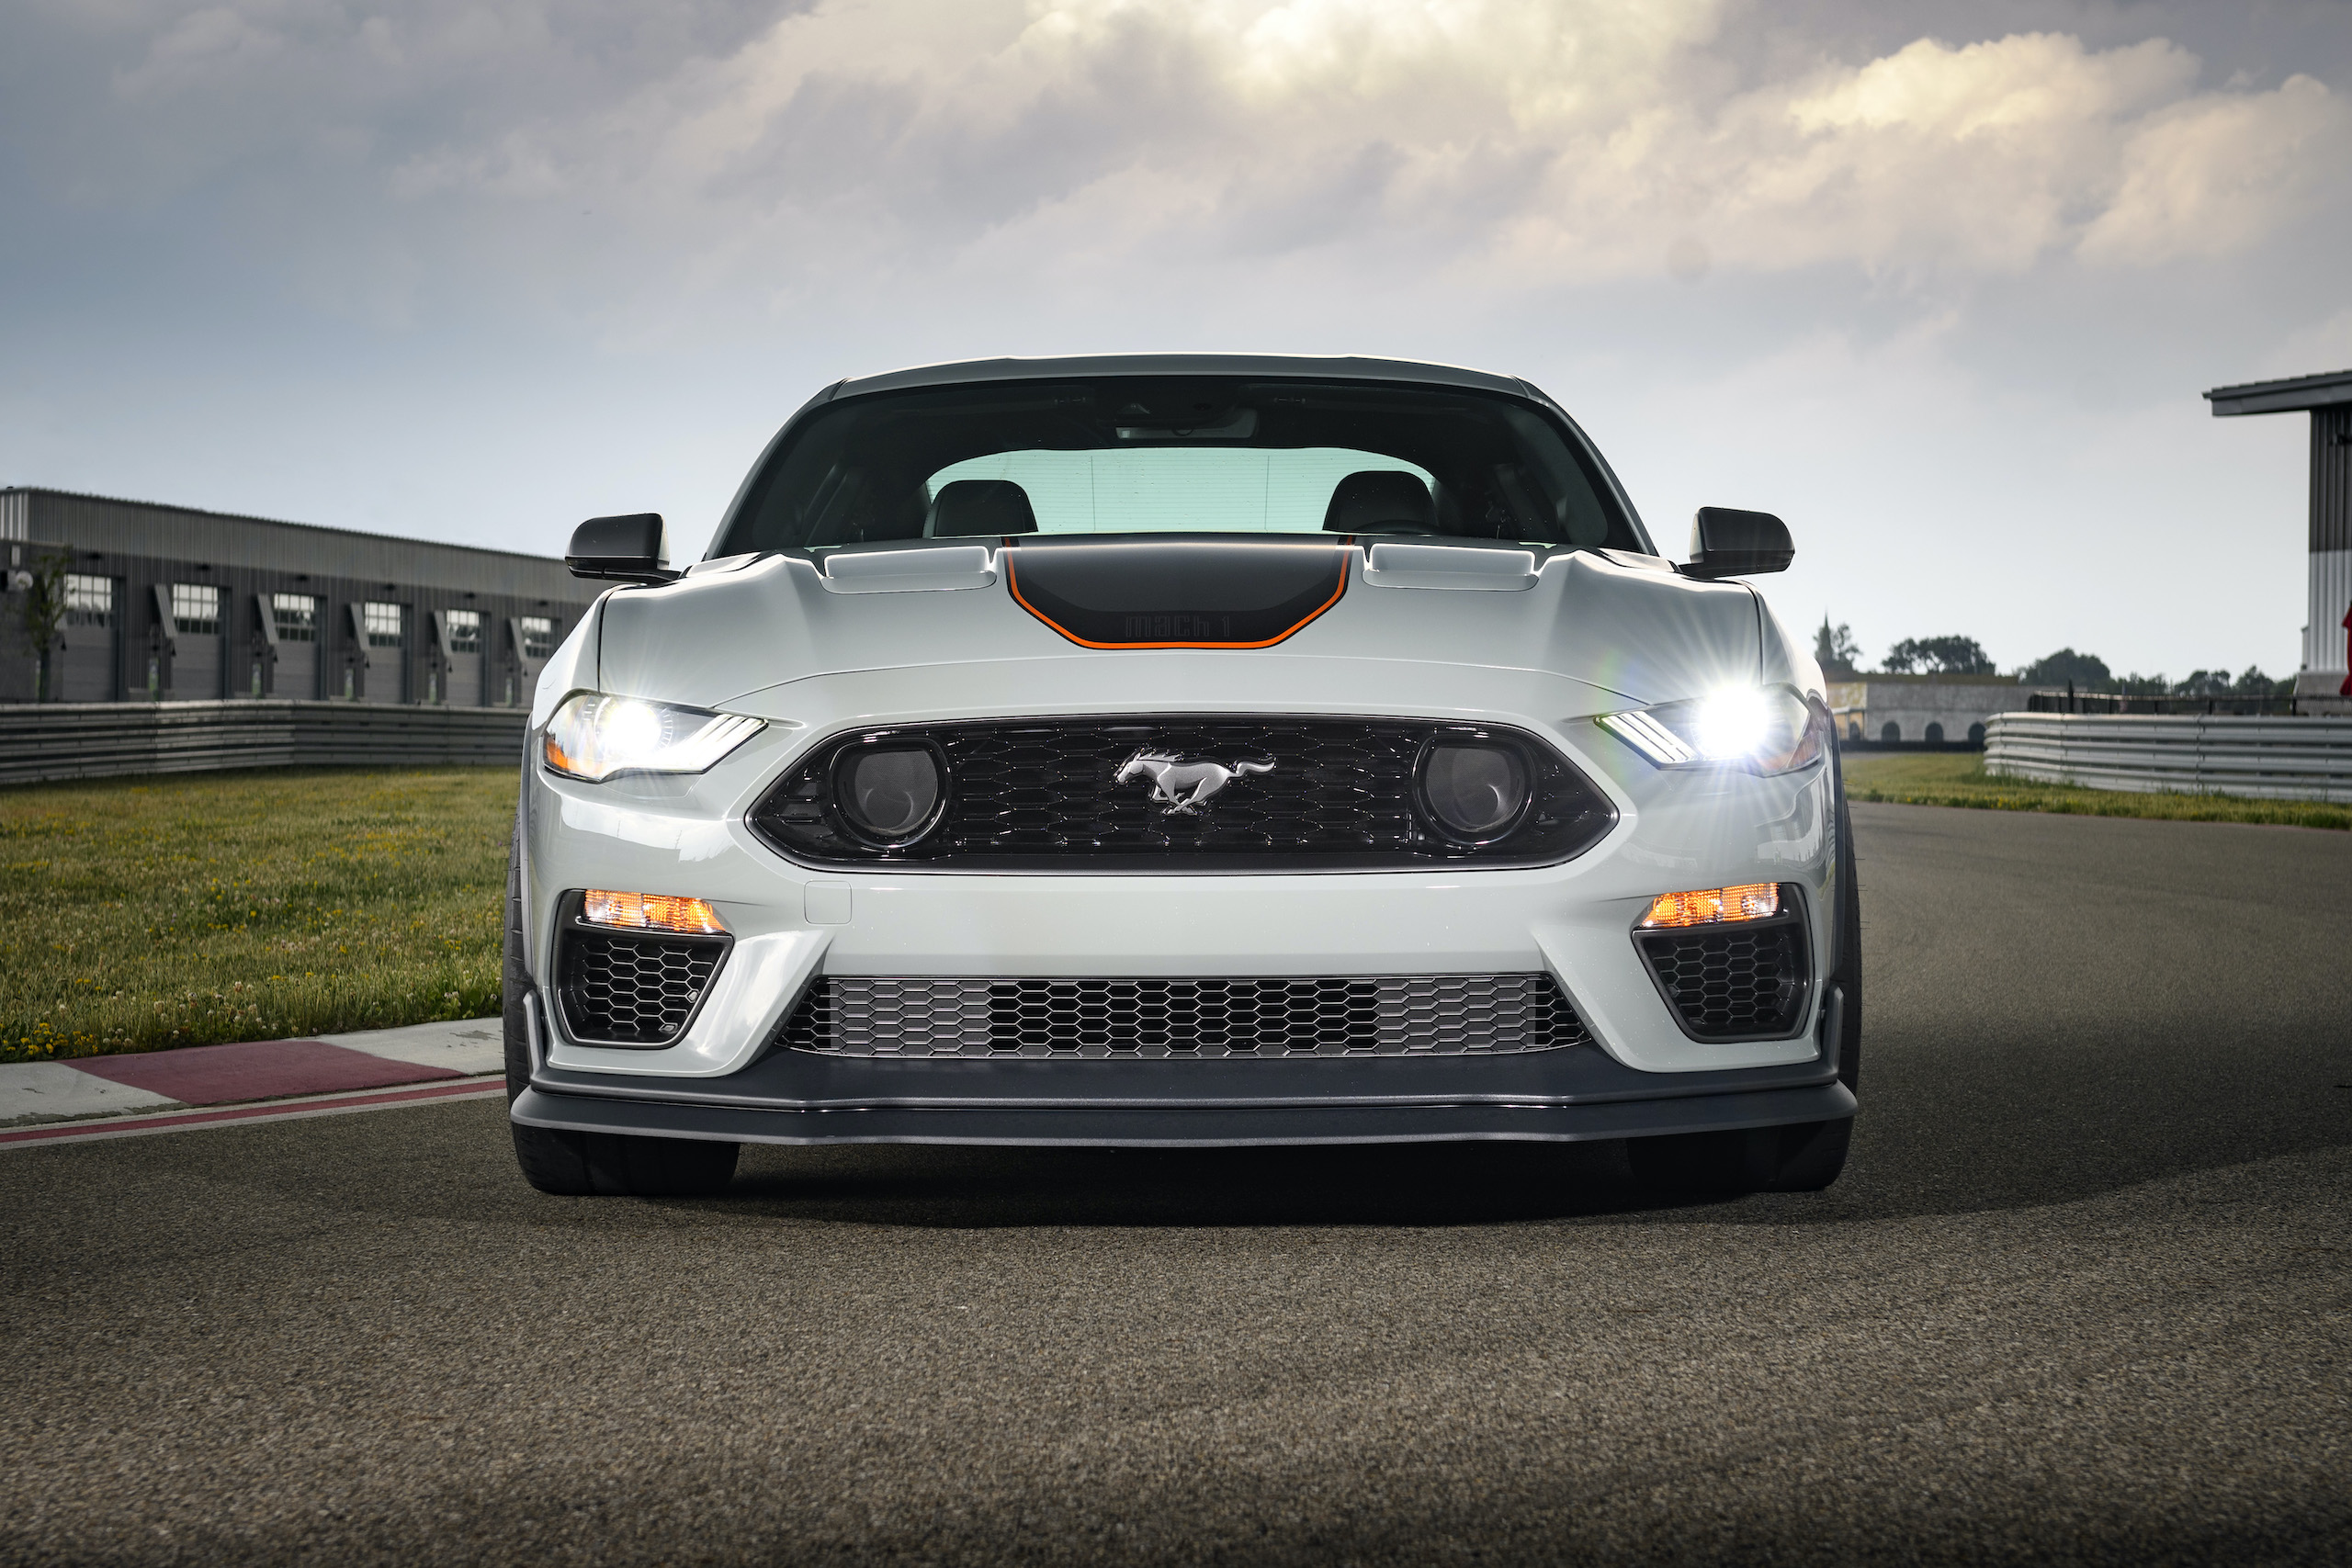 2021 Mustang Mach 1 white front